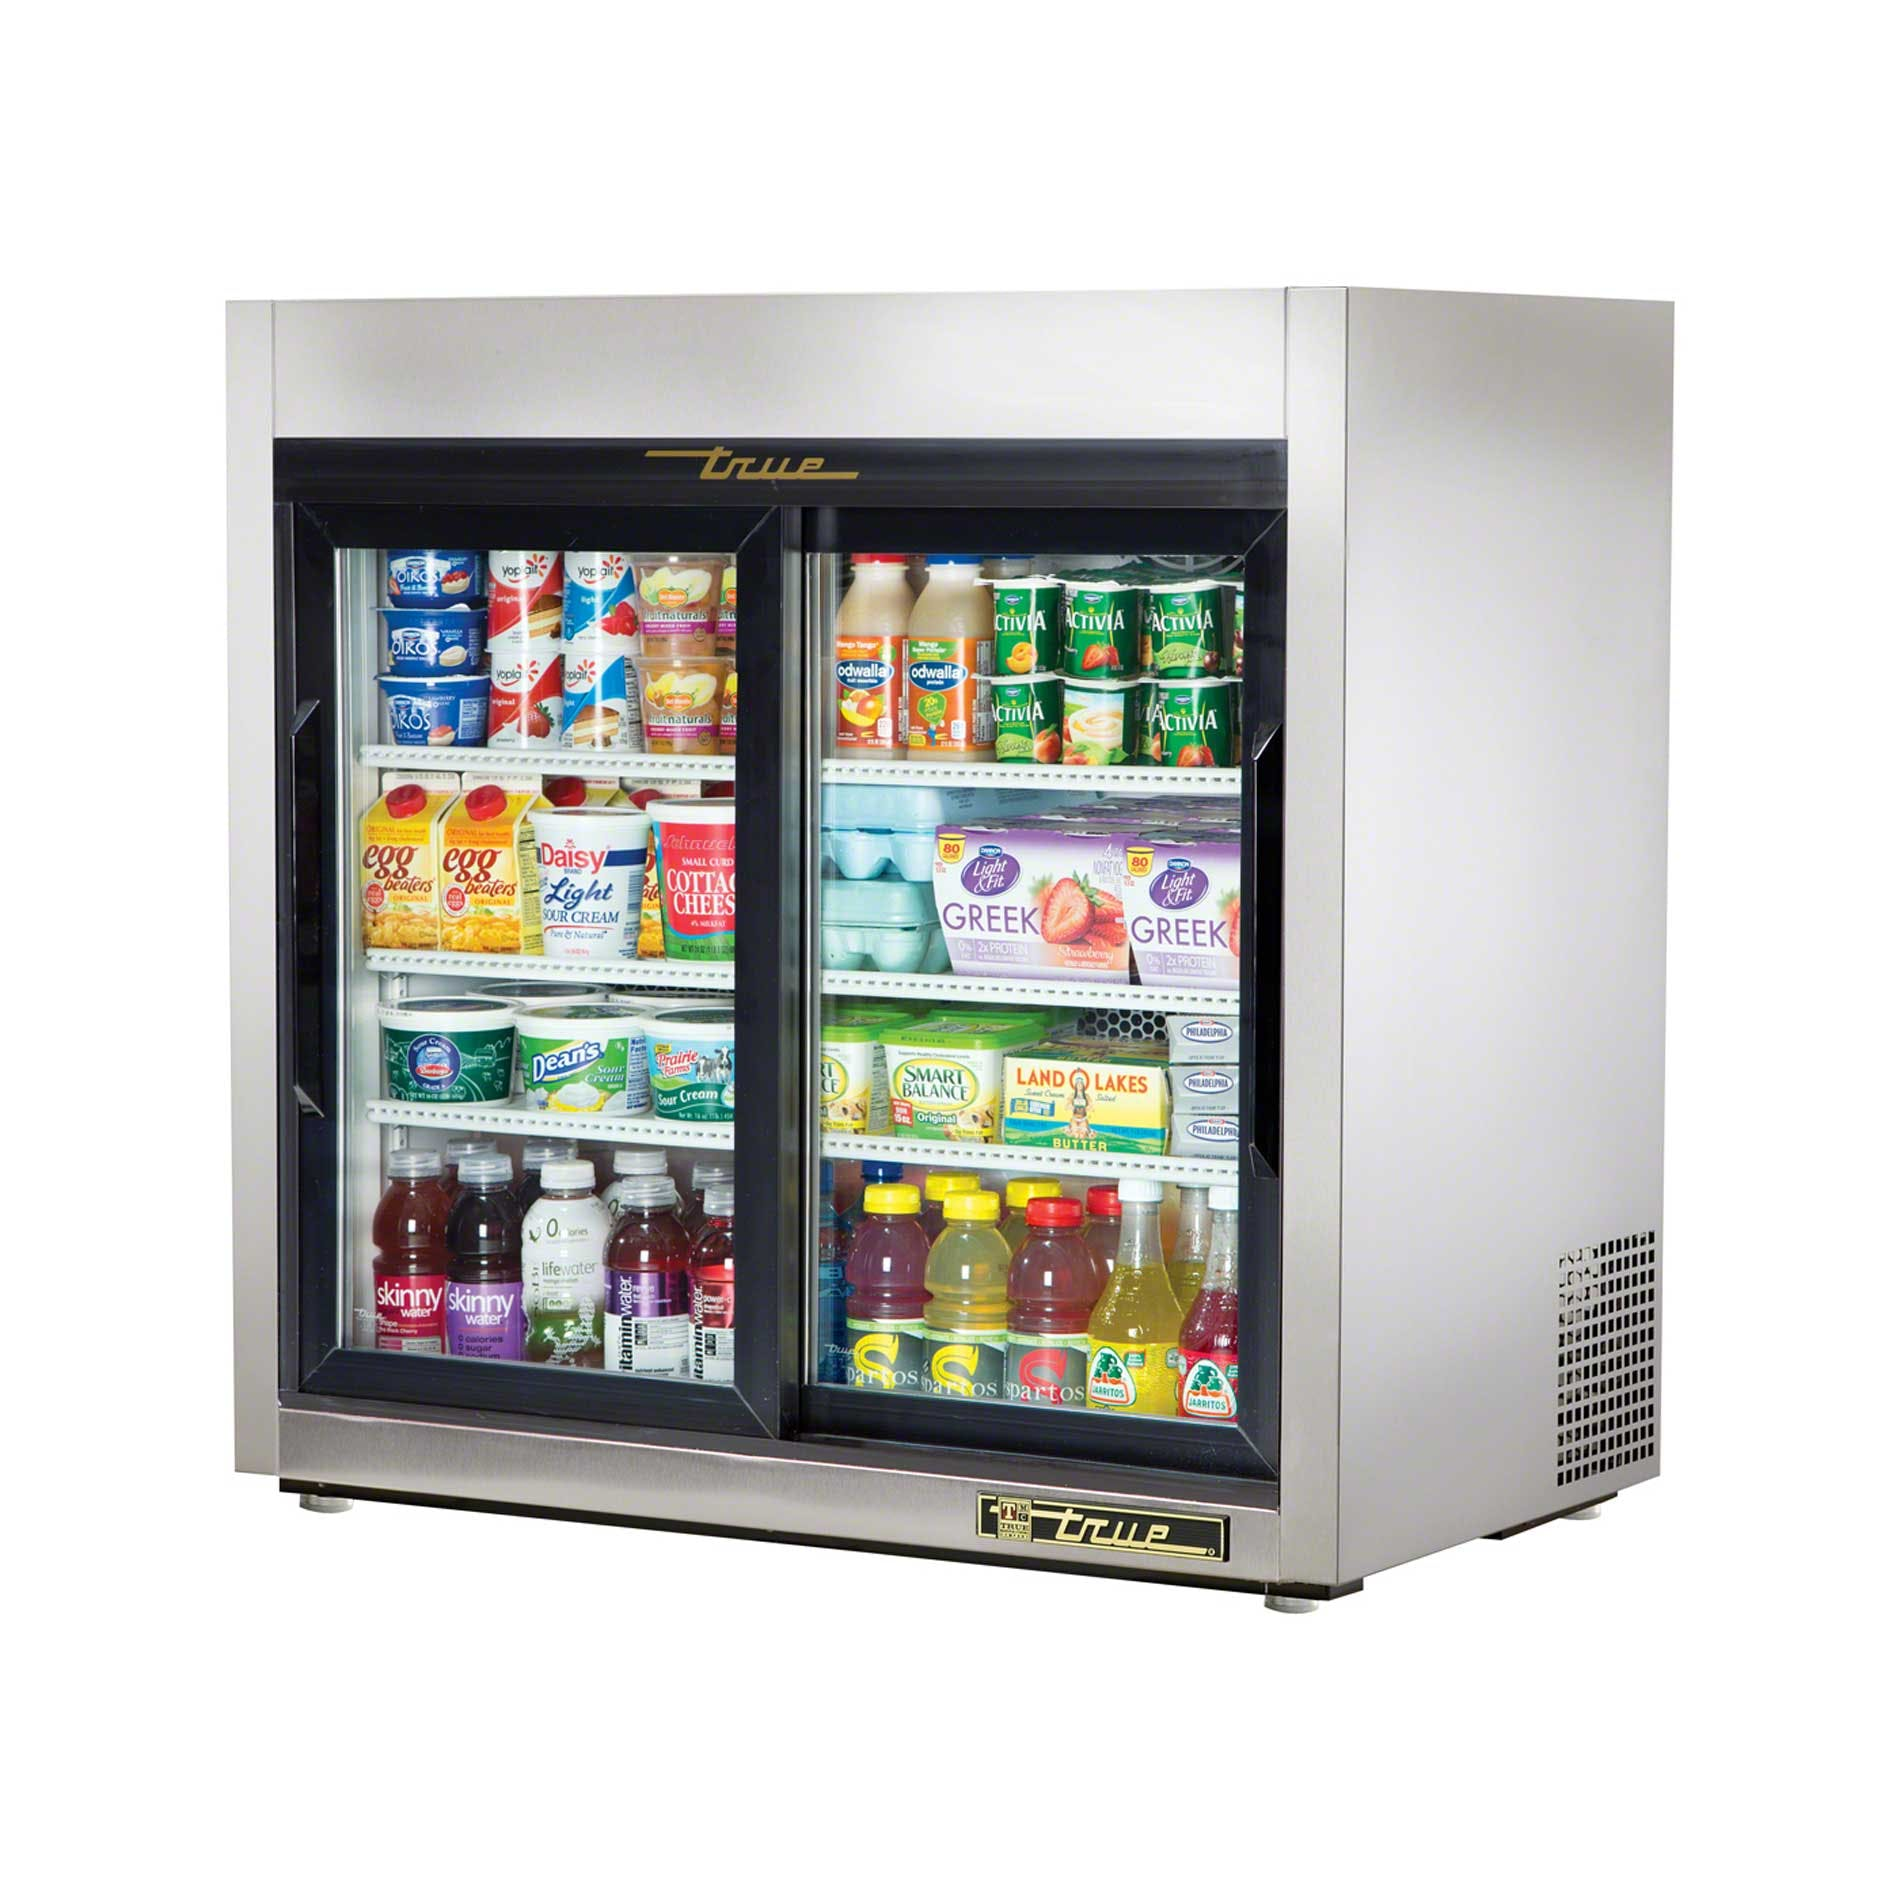 "True - TSD-9G-LD 36"" Slide Glass Door Countertop Merchandiser Refrigerator LED Commercial refrigerator sold by Food Service Warehouse"